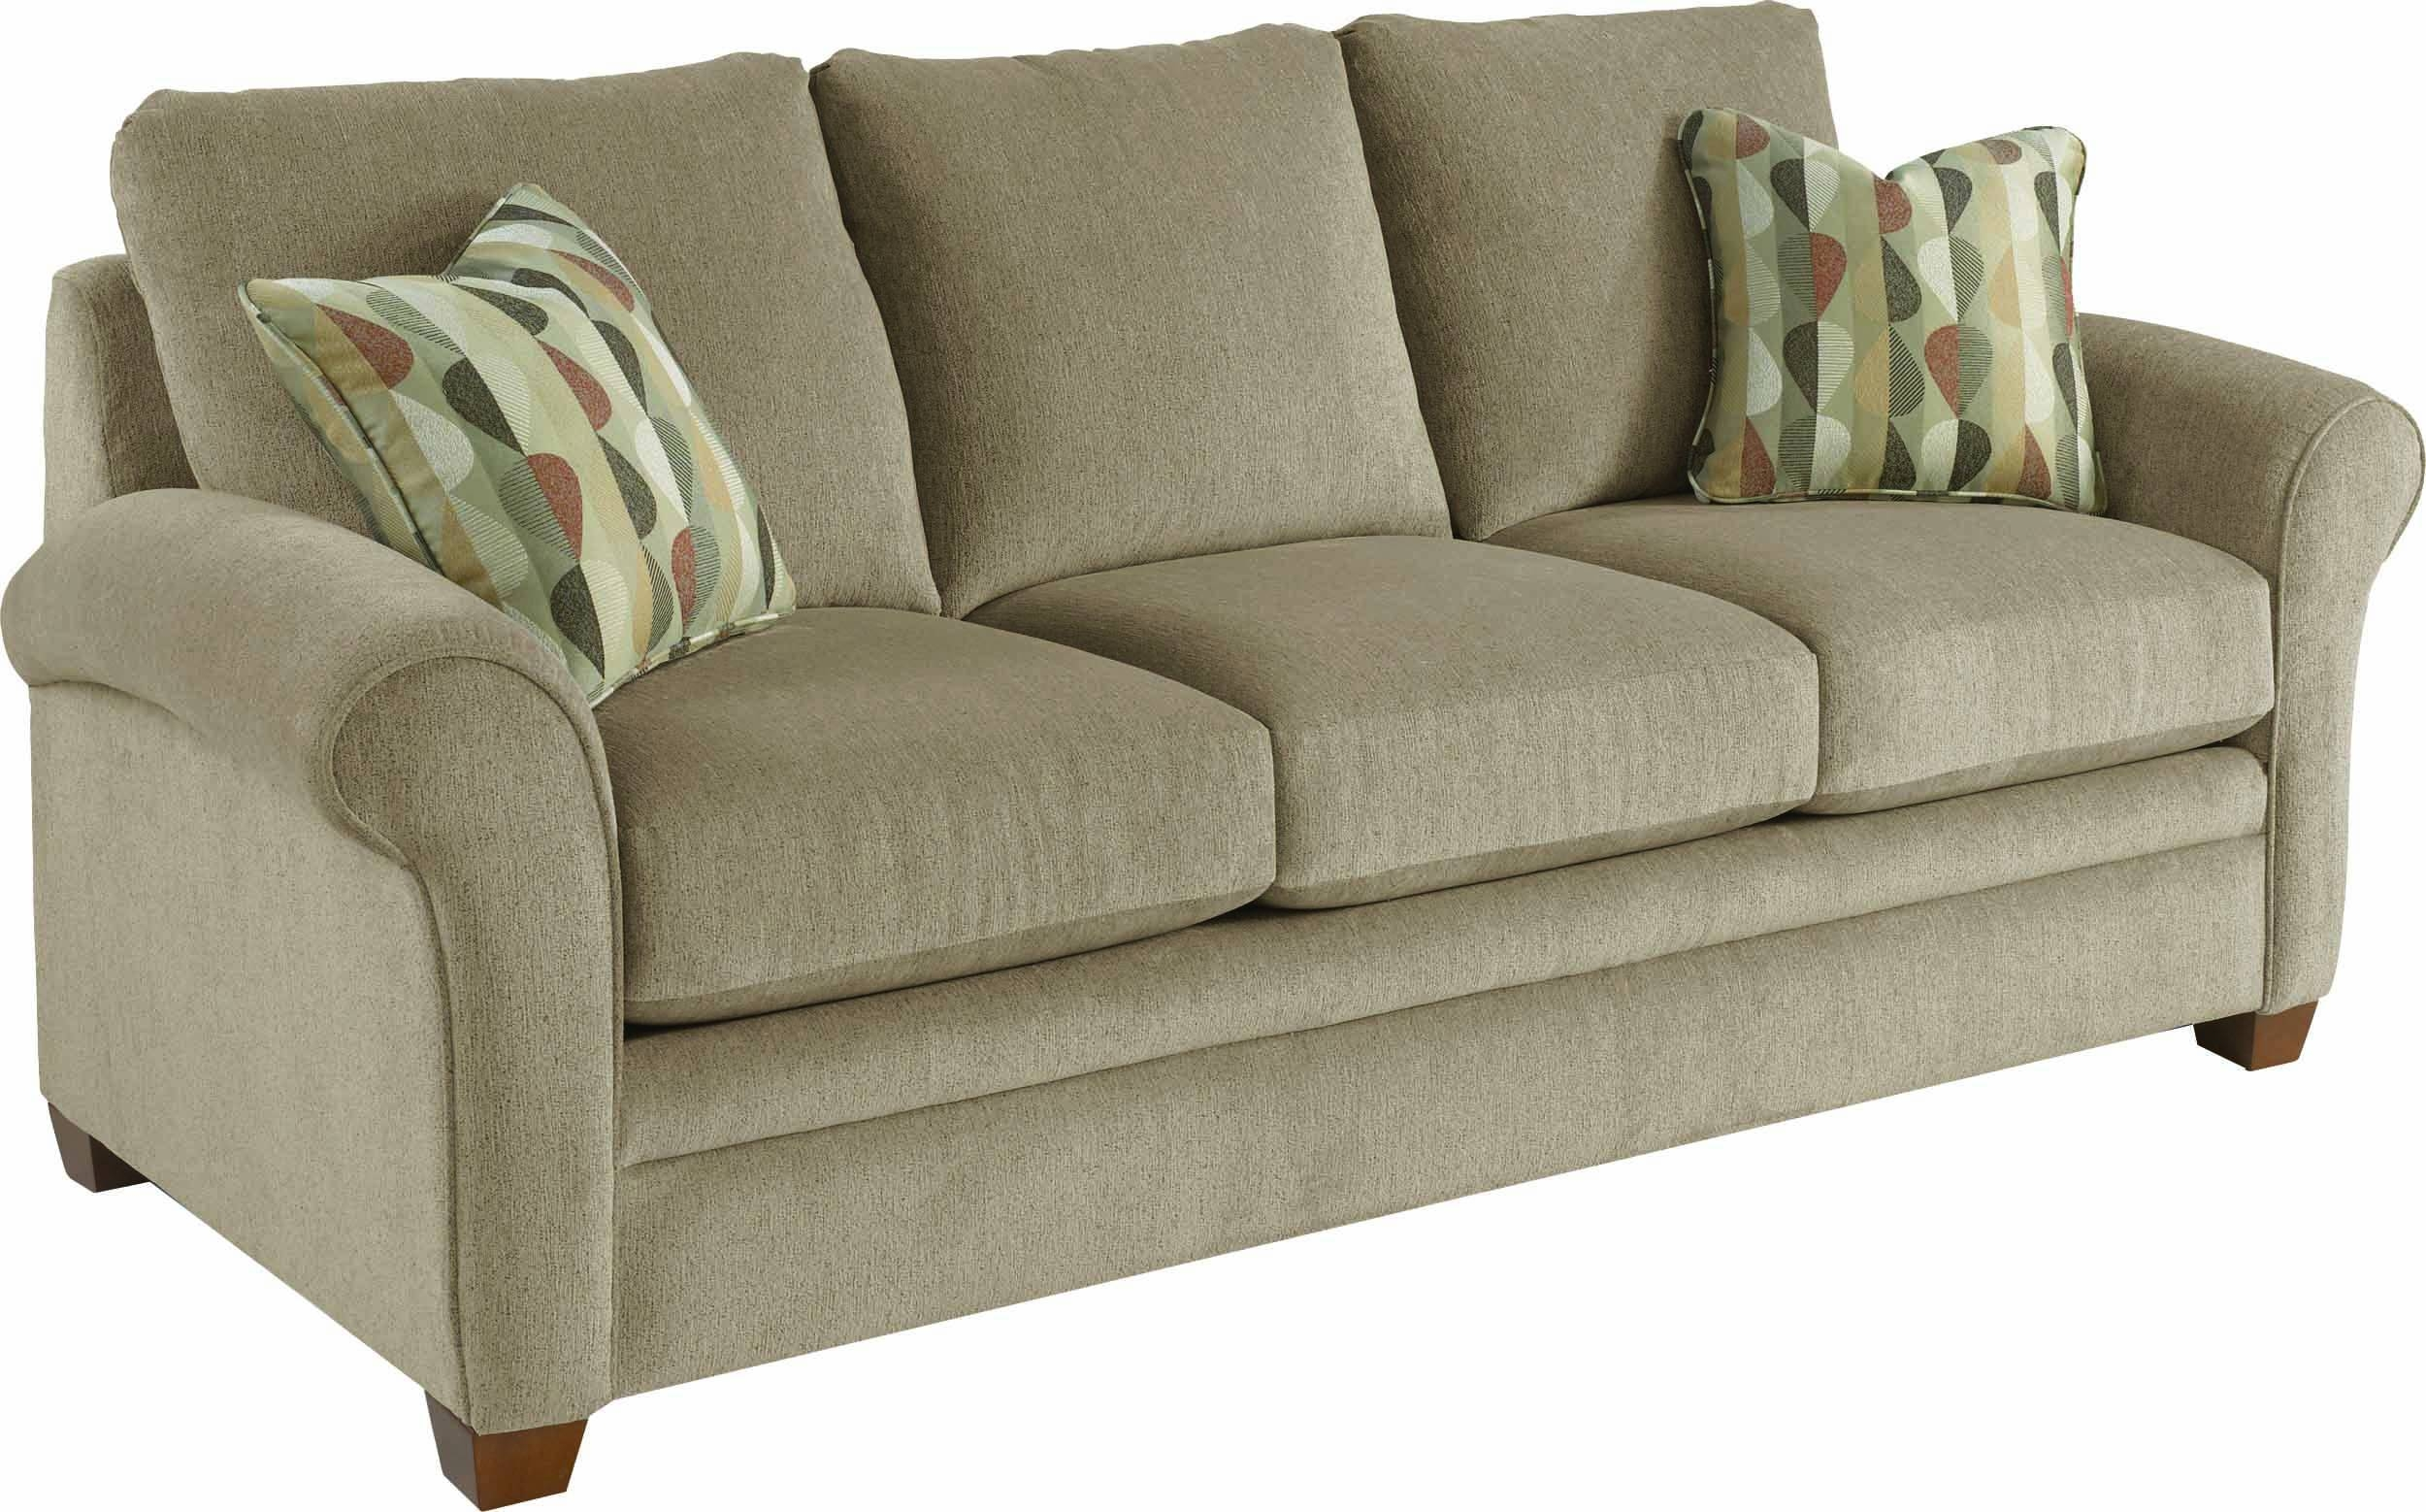 Grey Lazy Boy Sleeper Sofa With 3 Cushions Wingback And Wooden regarding Lazy Boy Sofas (Image 5 of 15)